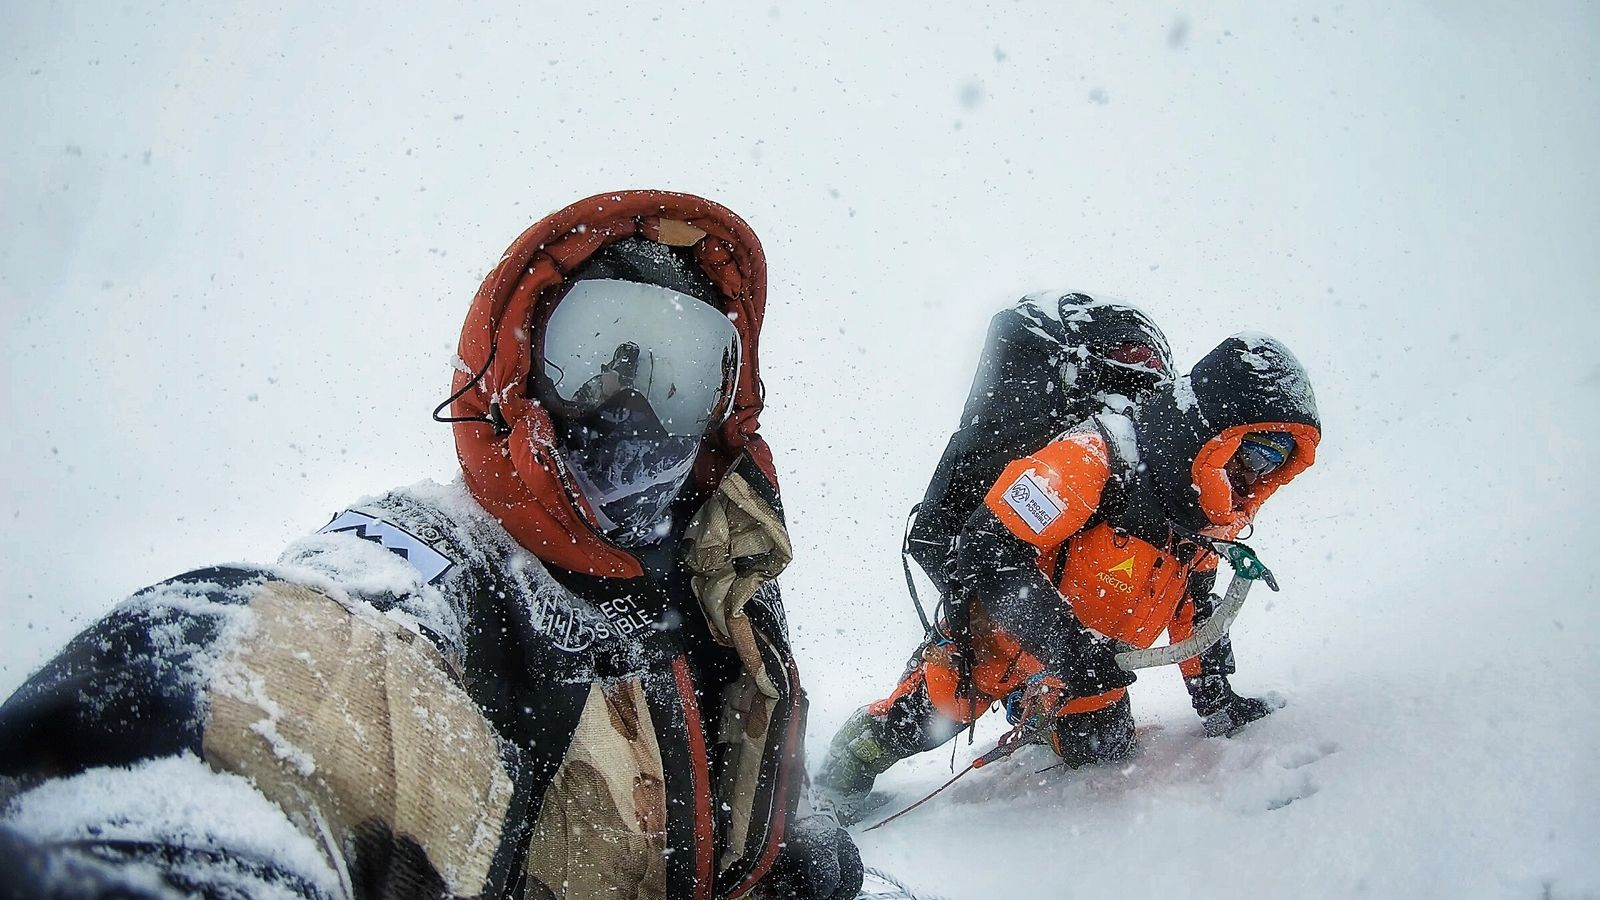 Nims Purja on top of Dhaulagiri in bad weather. Unlike Everest, which has been commercialised to the ...